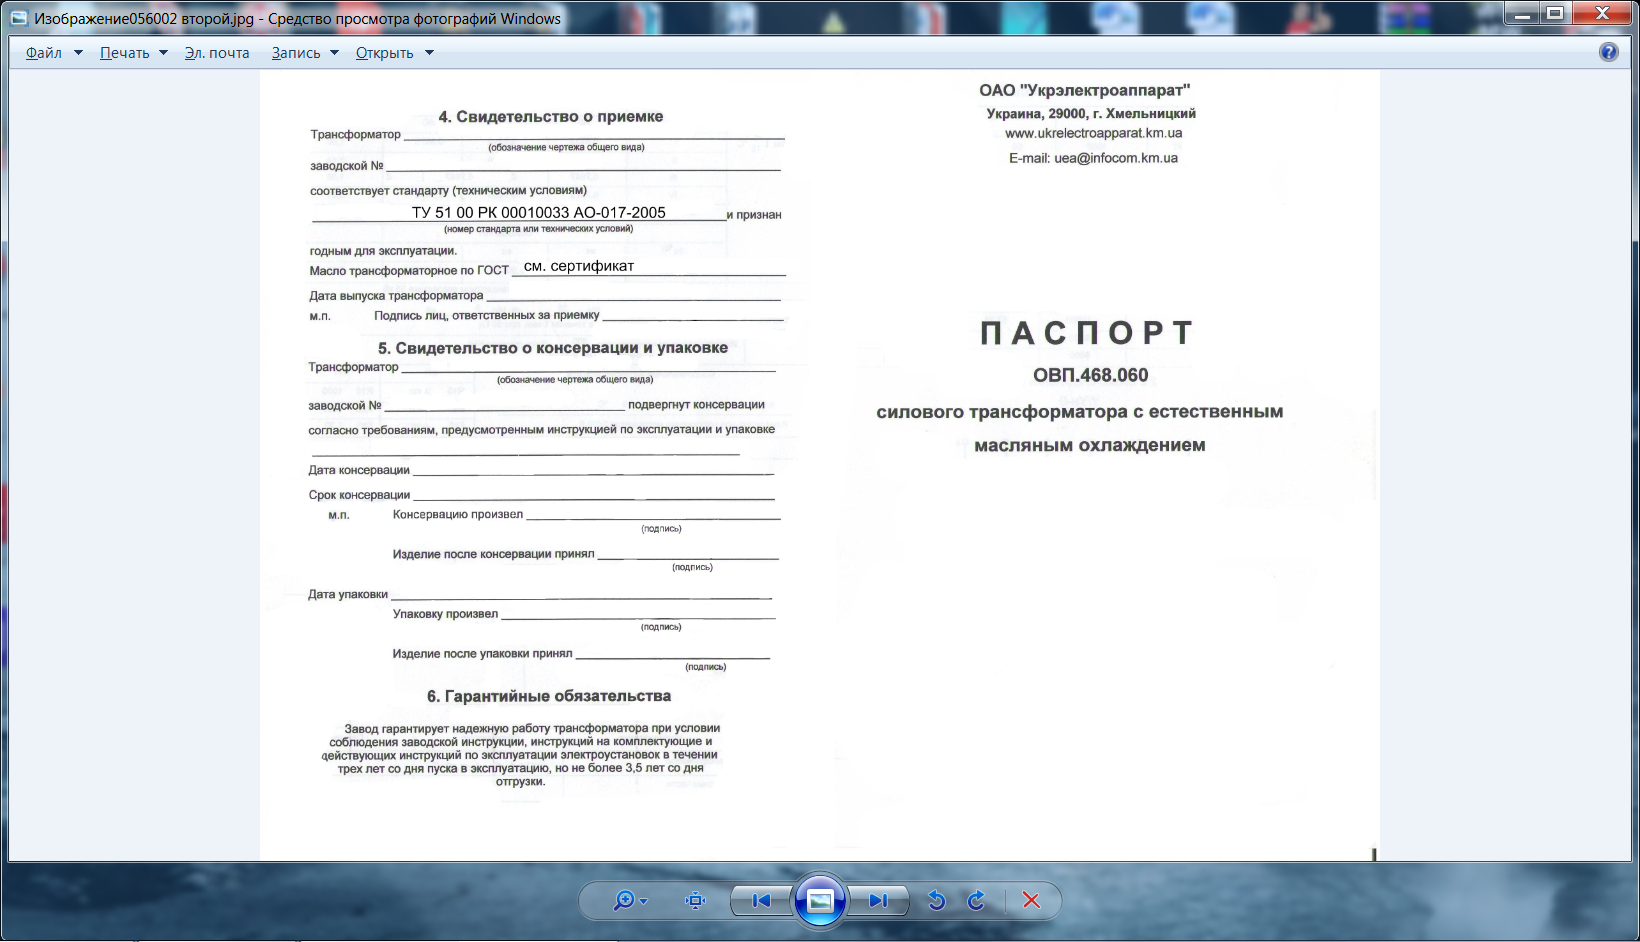 The form of the passport of the Ukrainian transformers